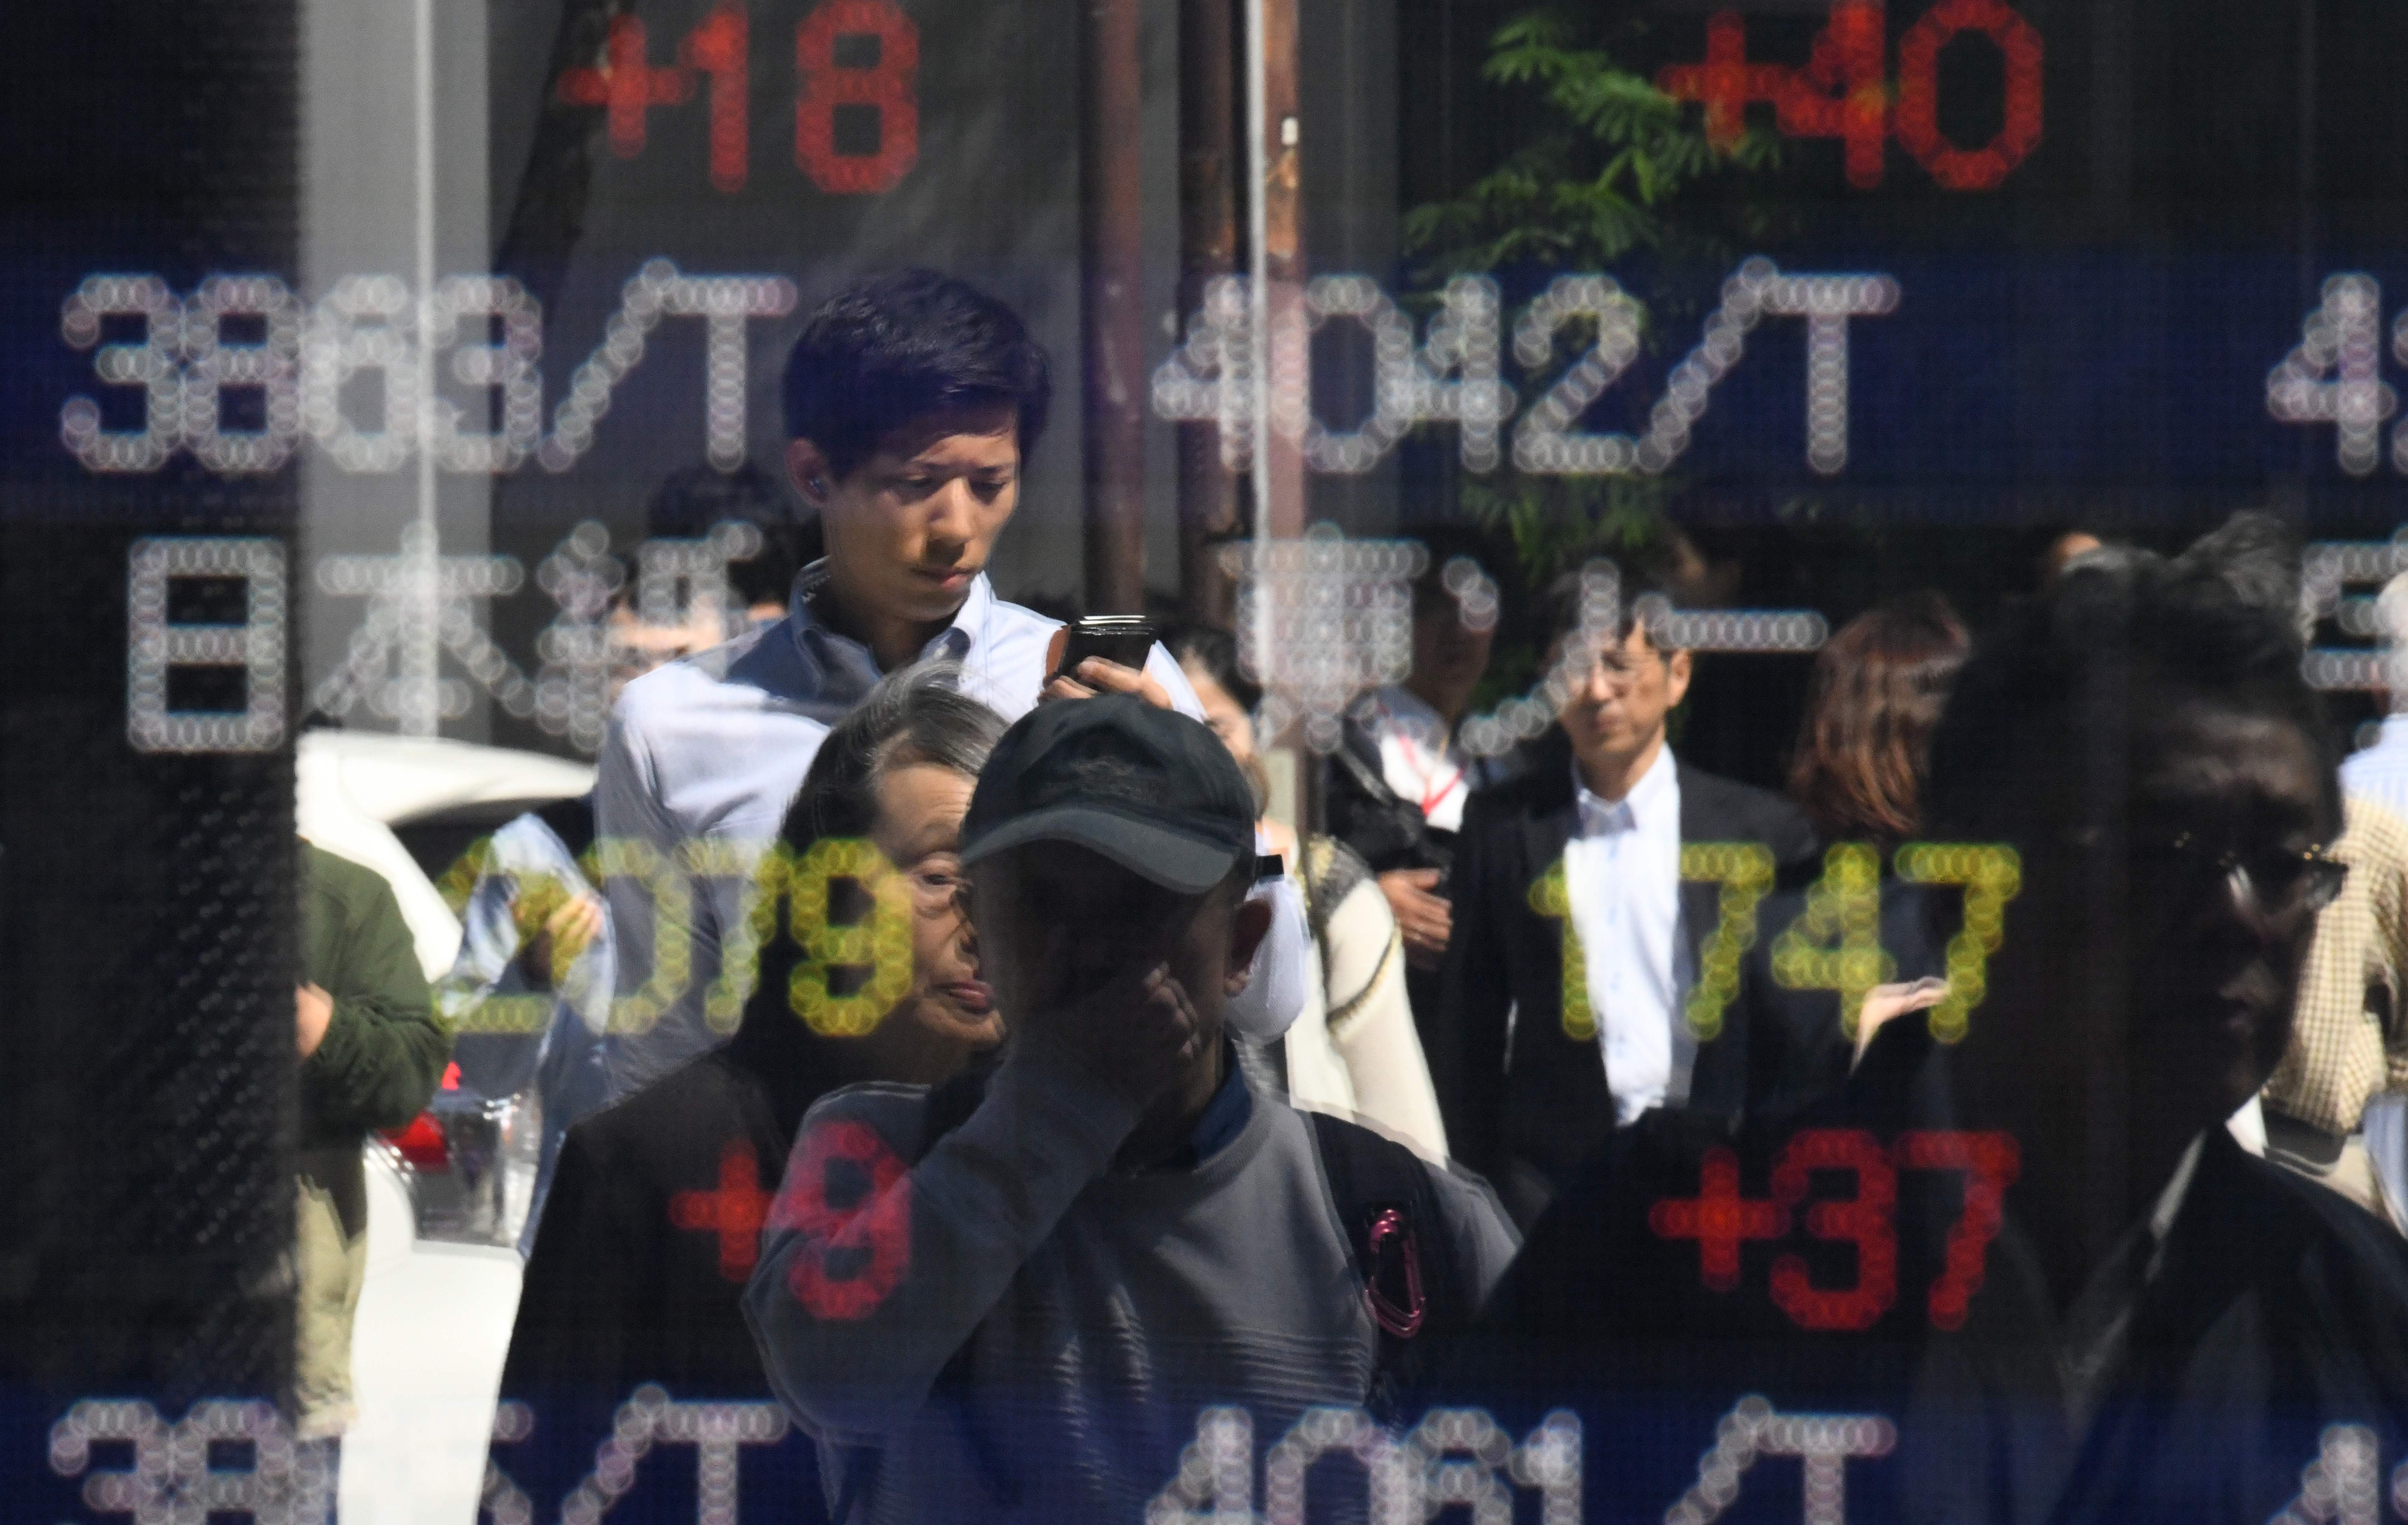 Asia markets December 12: The Fed, US-China trade war, currencies